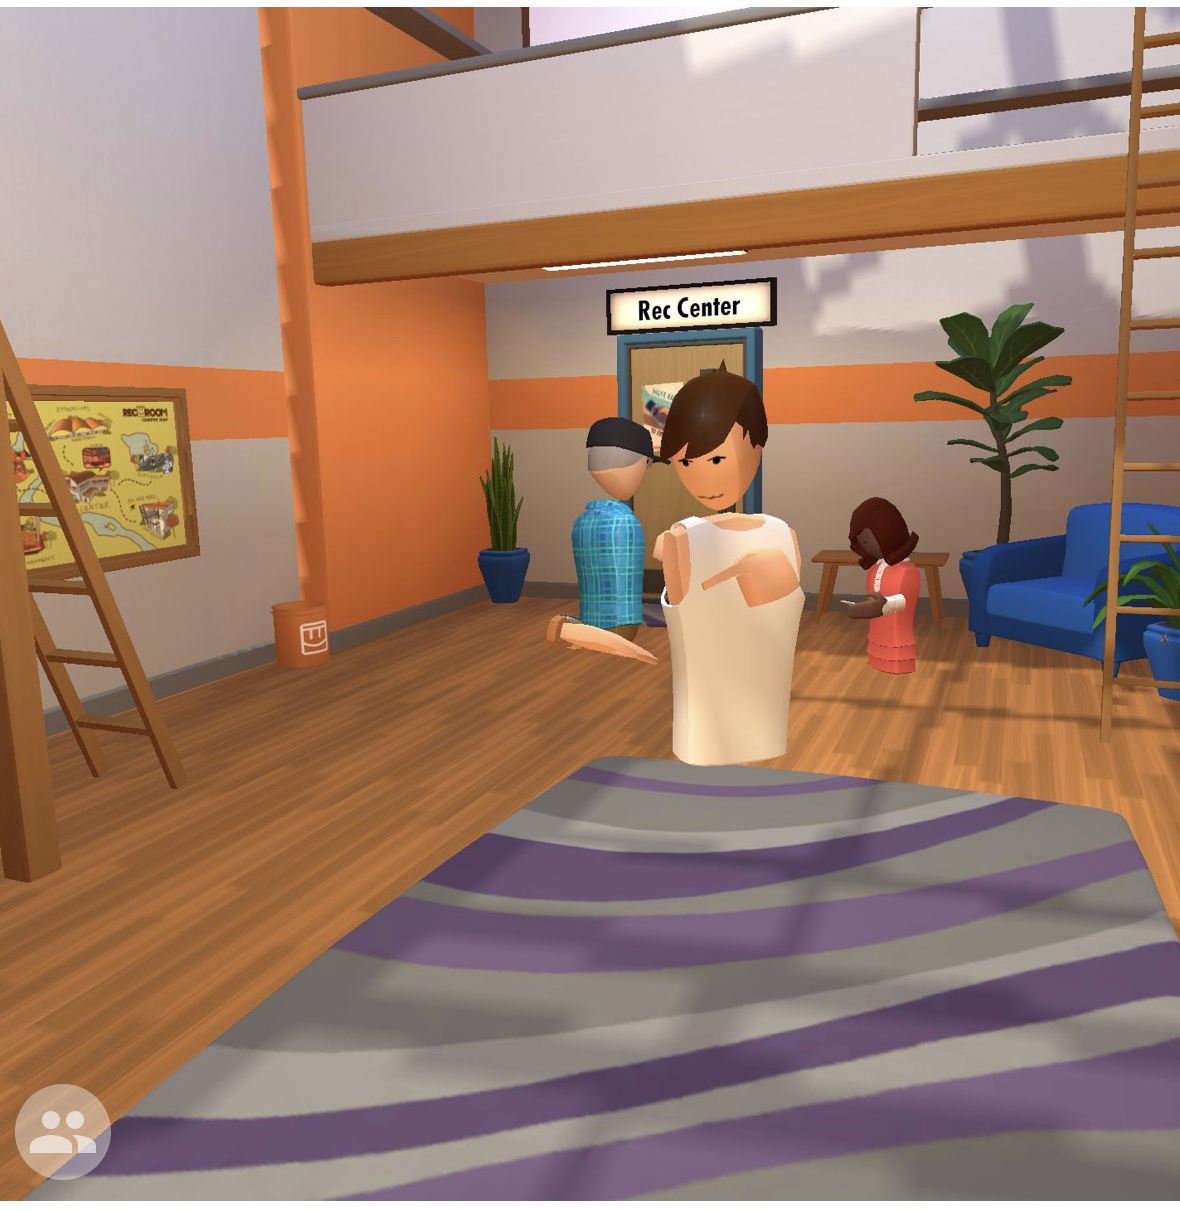 A screenshot from Rec Room, a VR software, showing three avatars